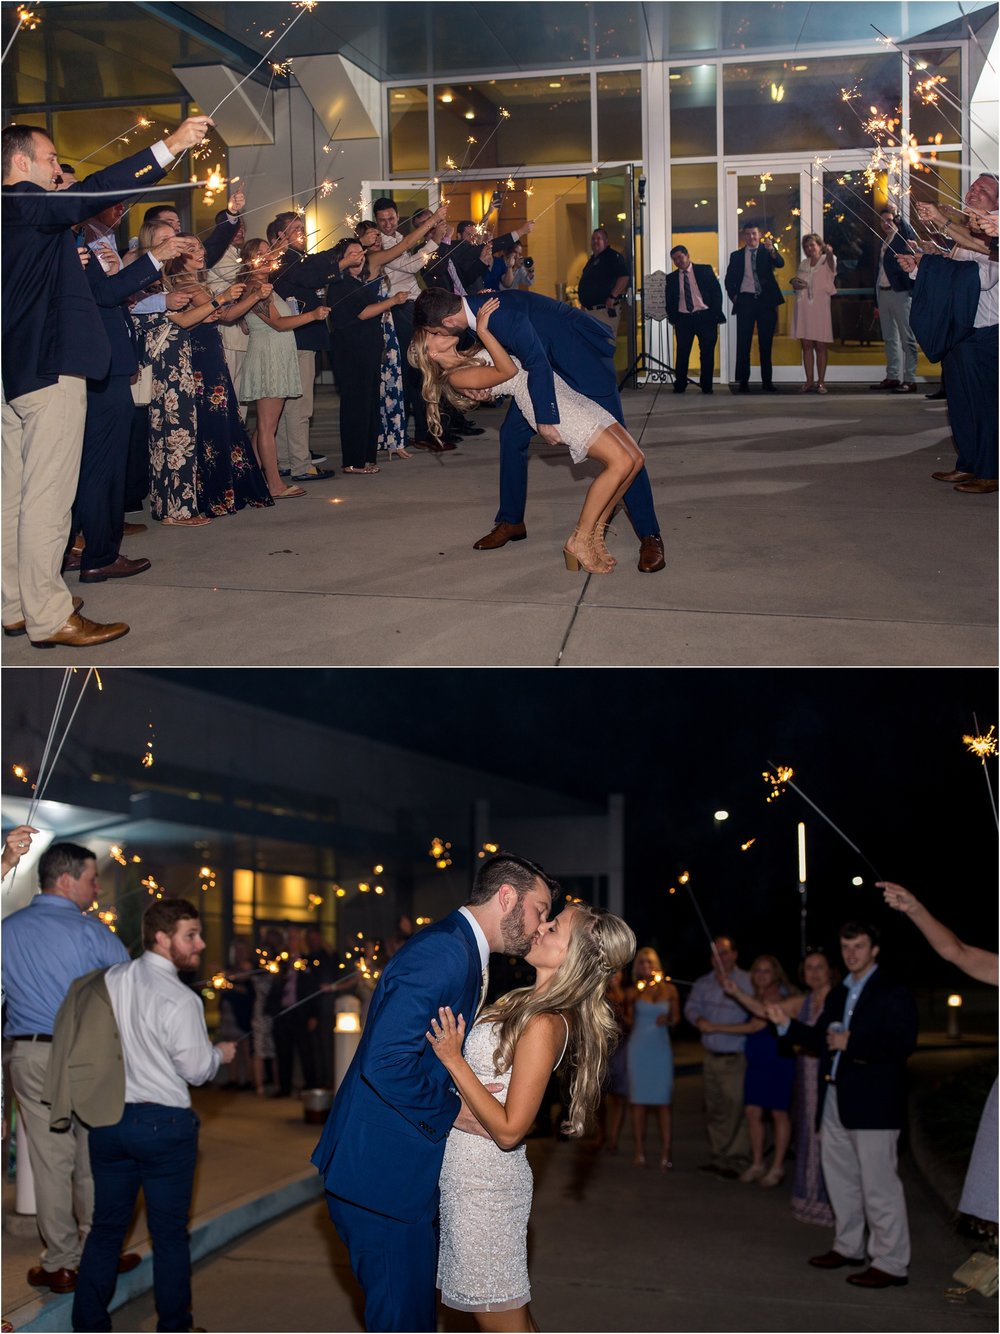 Savannah Eve Photography- Barkie-Wilson Wedding- Sneak Peek-83.jpg